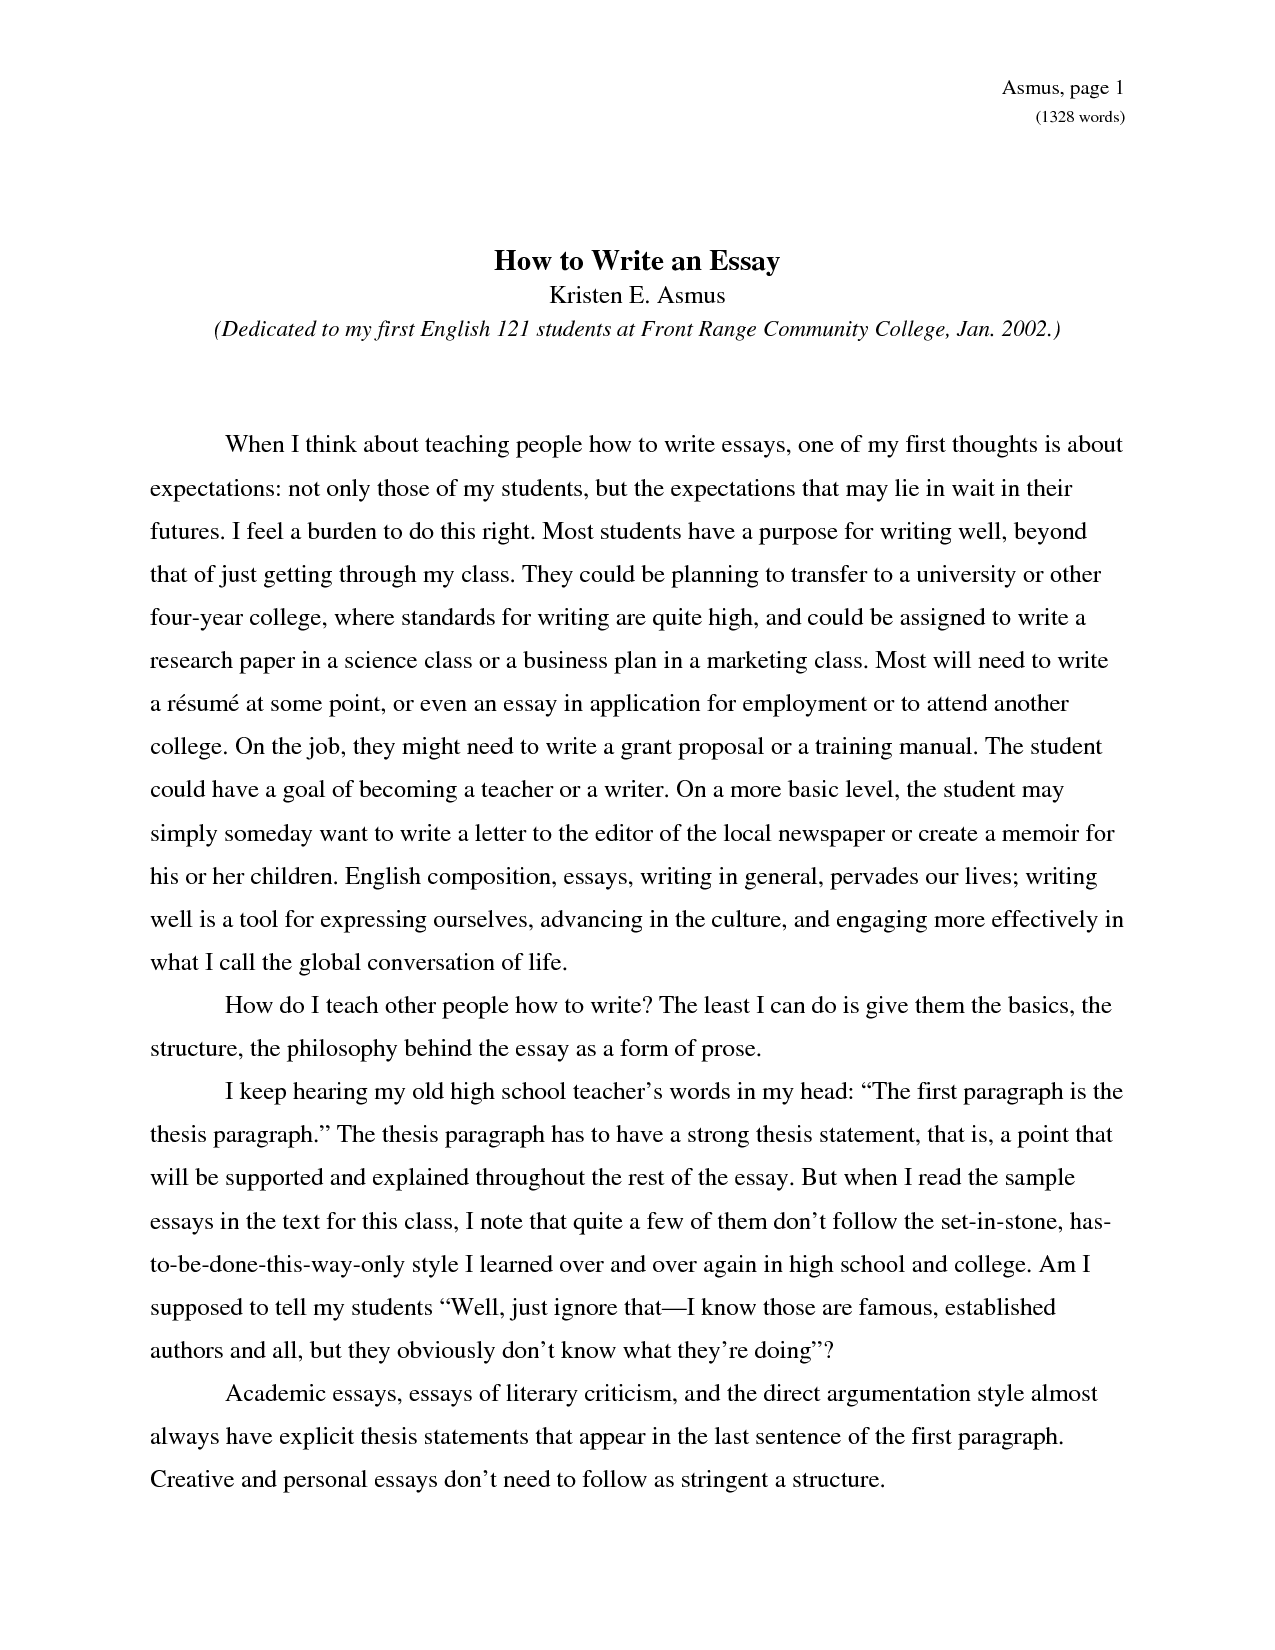 How to write a good definition essay